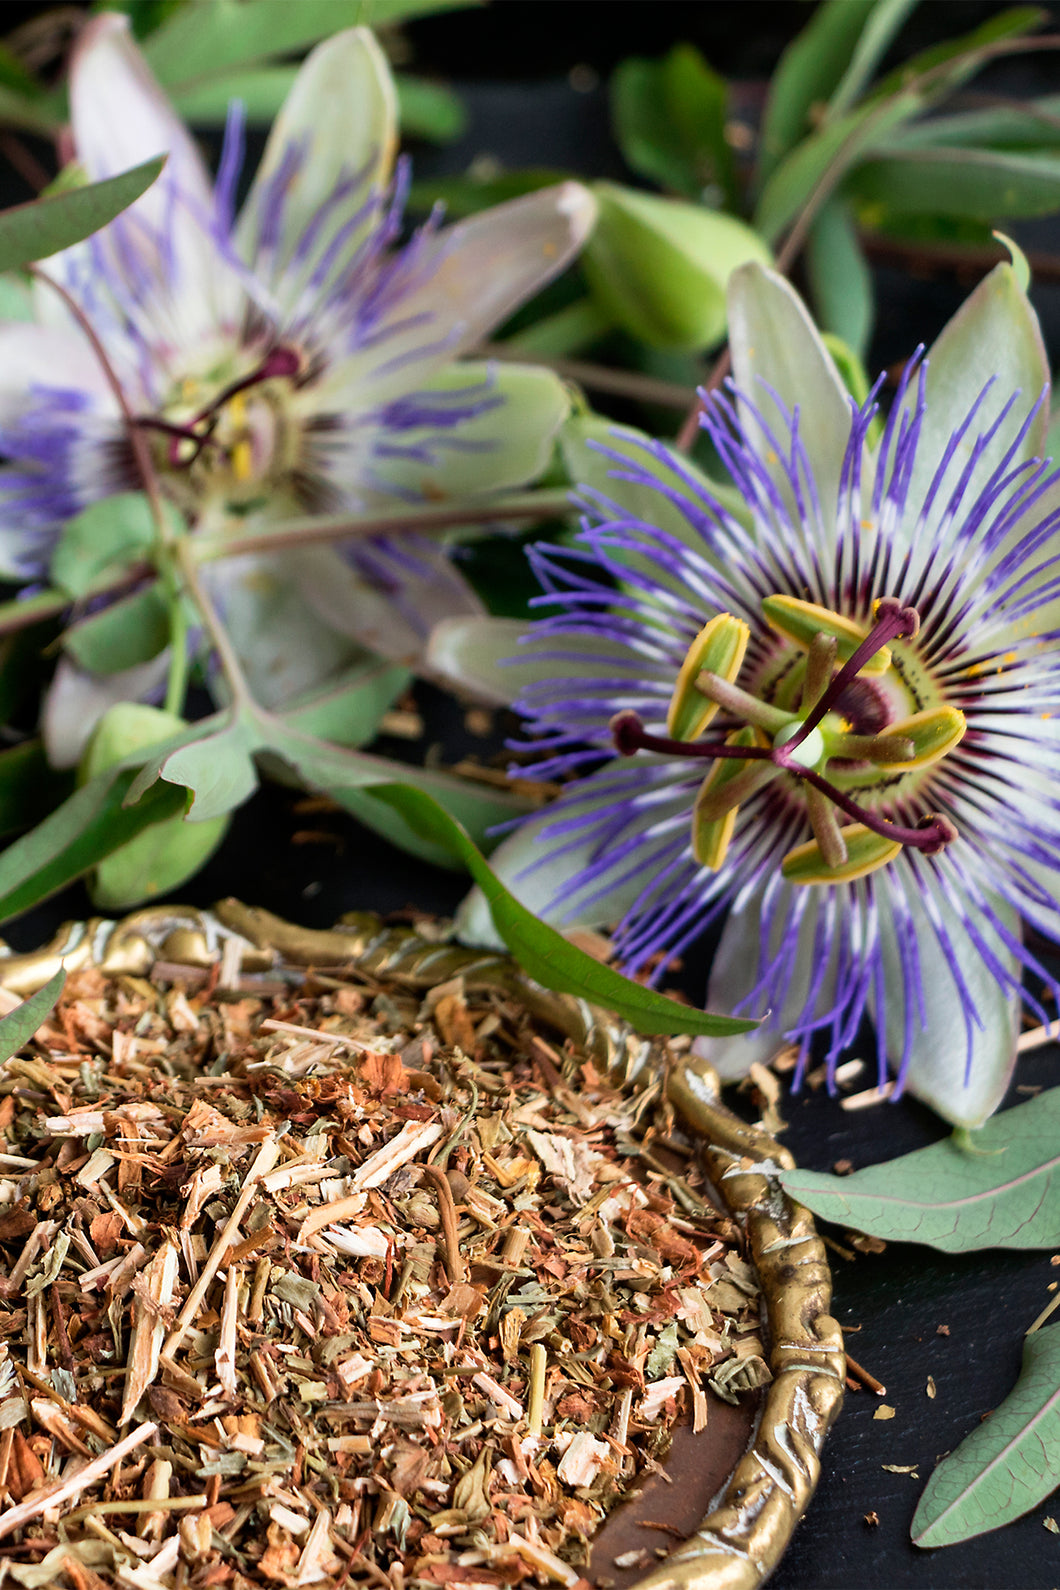 Oregon's Wild Harvest Non-GMO, Organic Passionflower Tops Cut-and-Sift